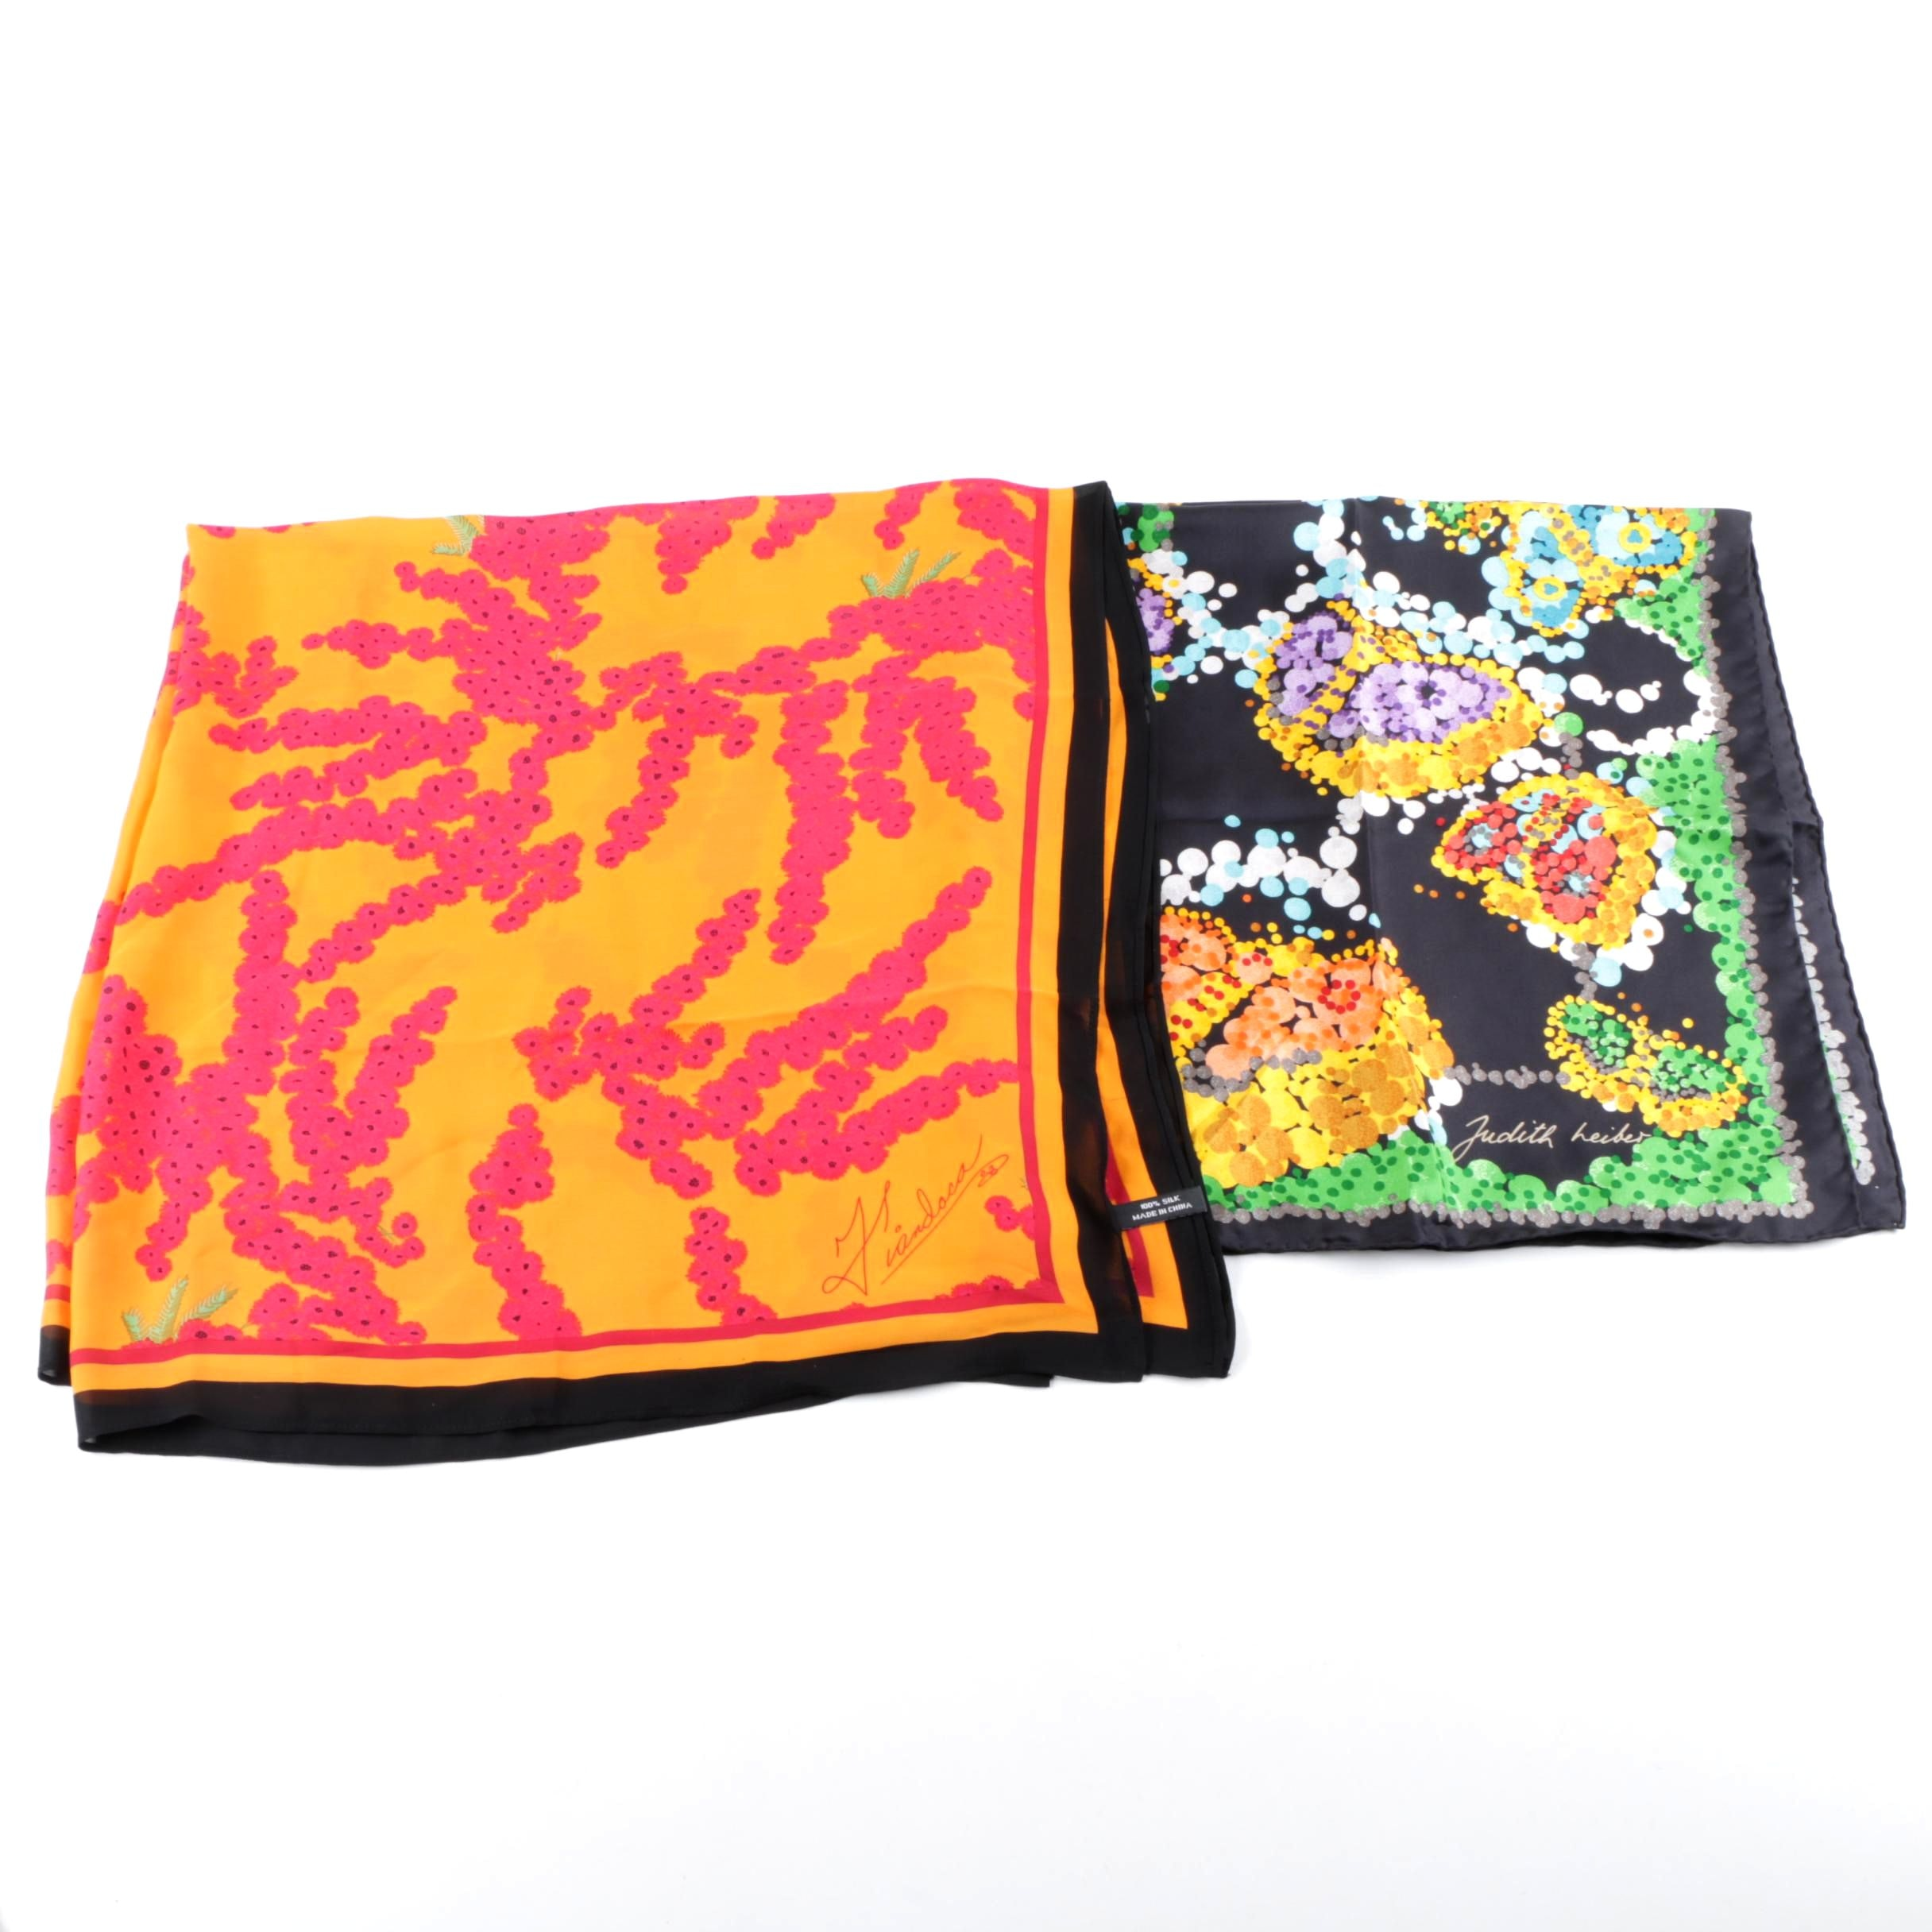 Silk Scarves by Judith Leiber and Fiandaca